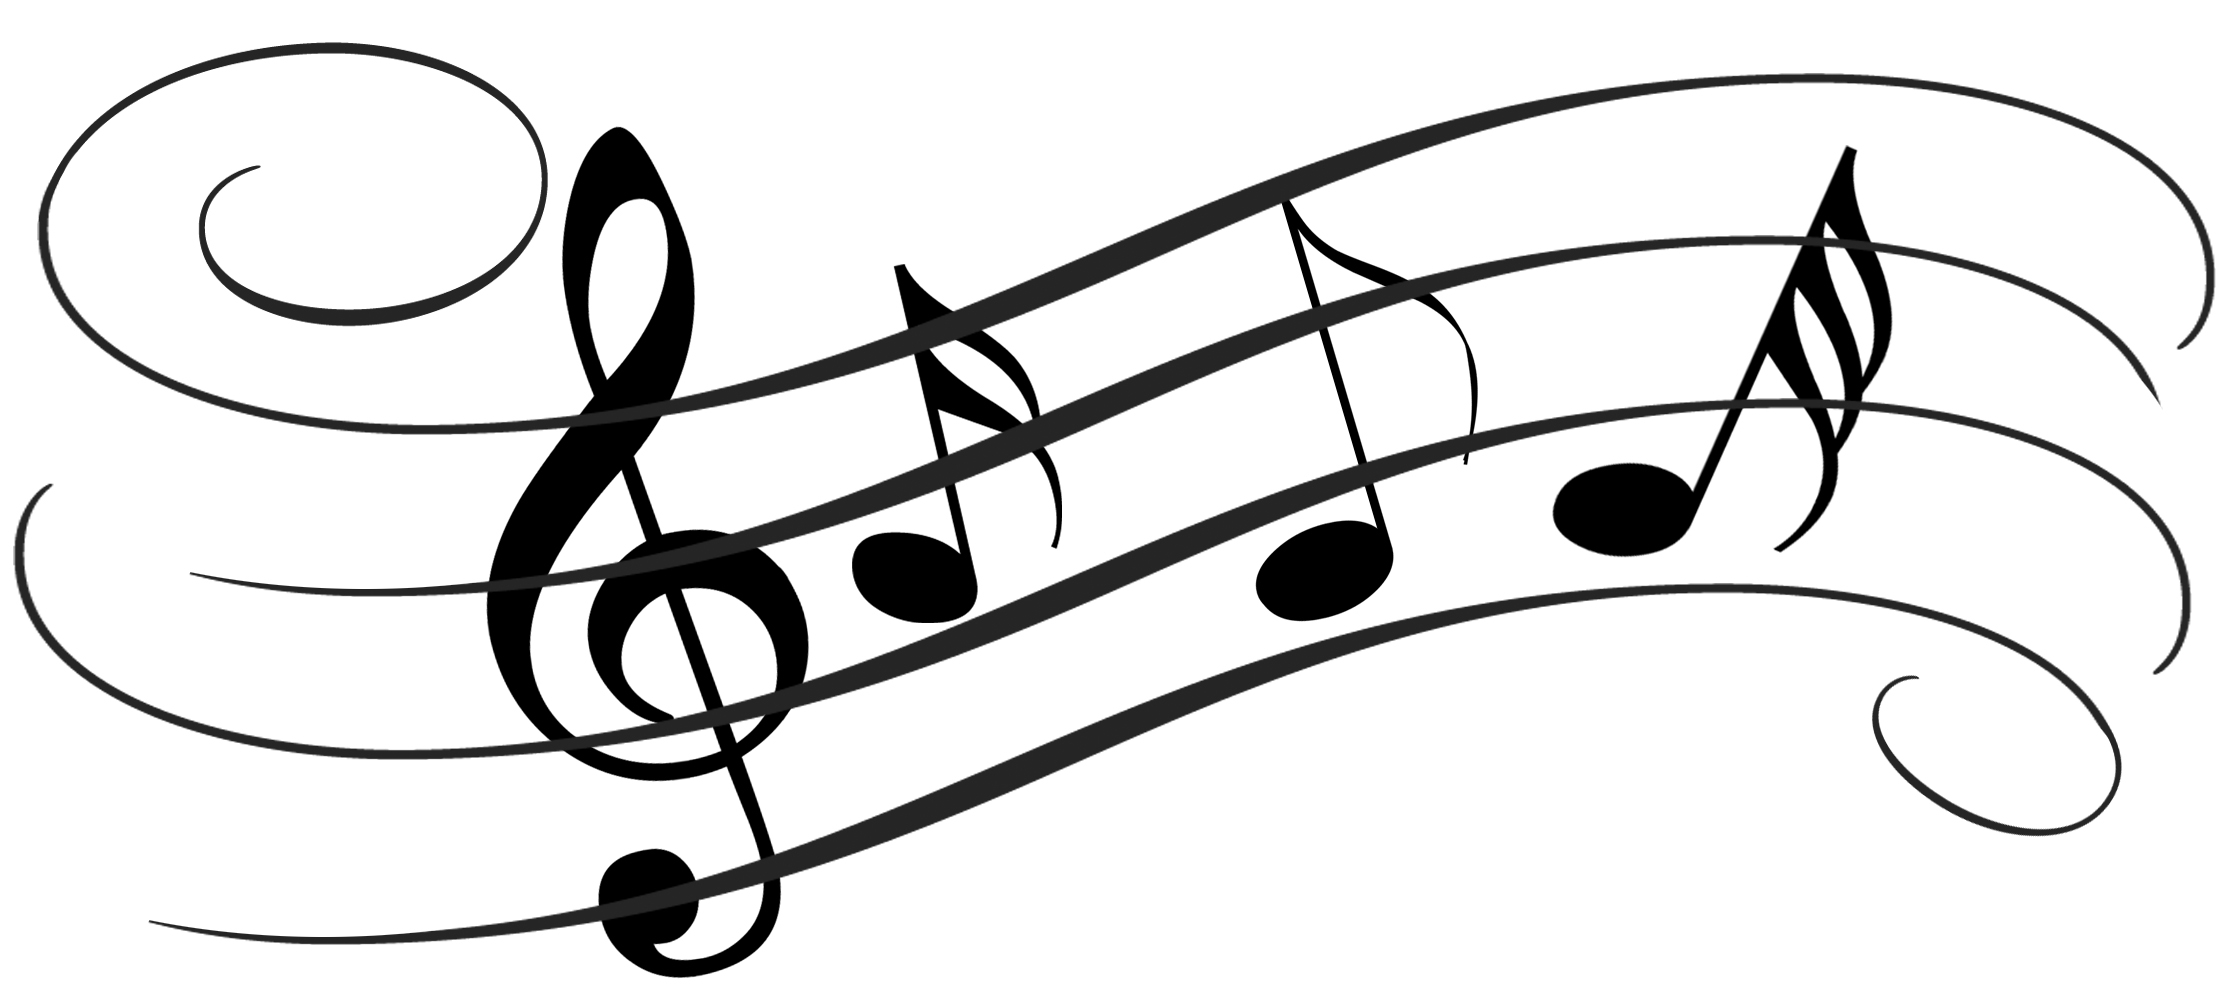 Music Notes No Background Clipart - Clipart Kid